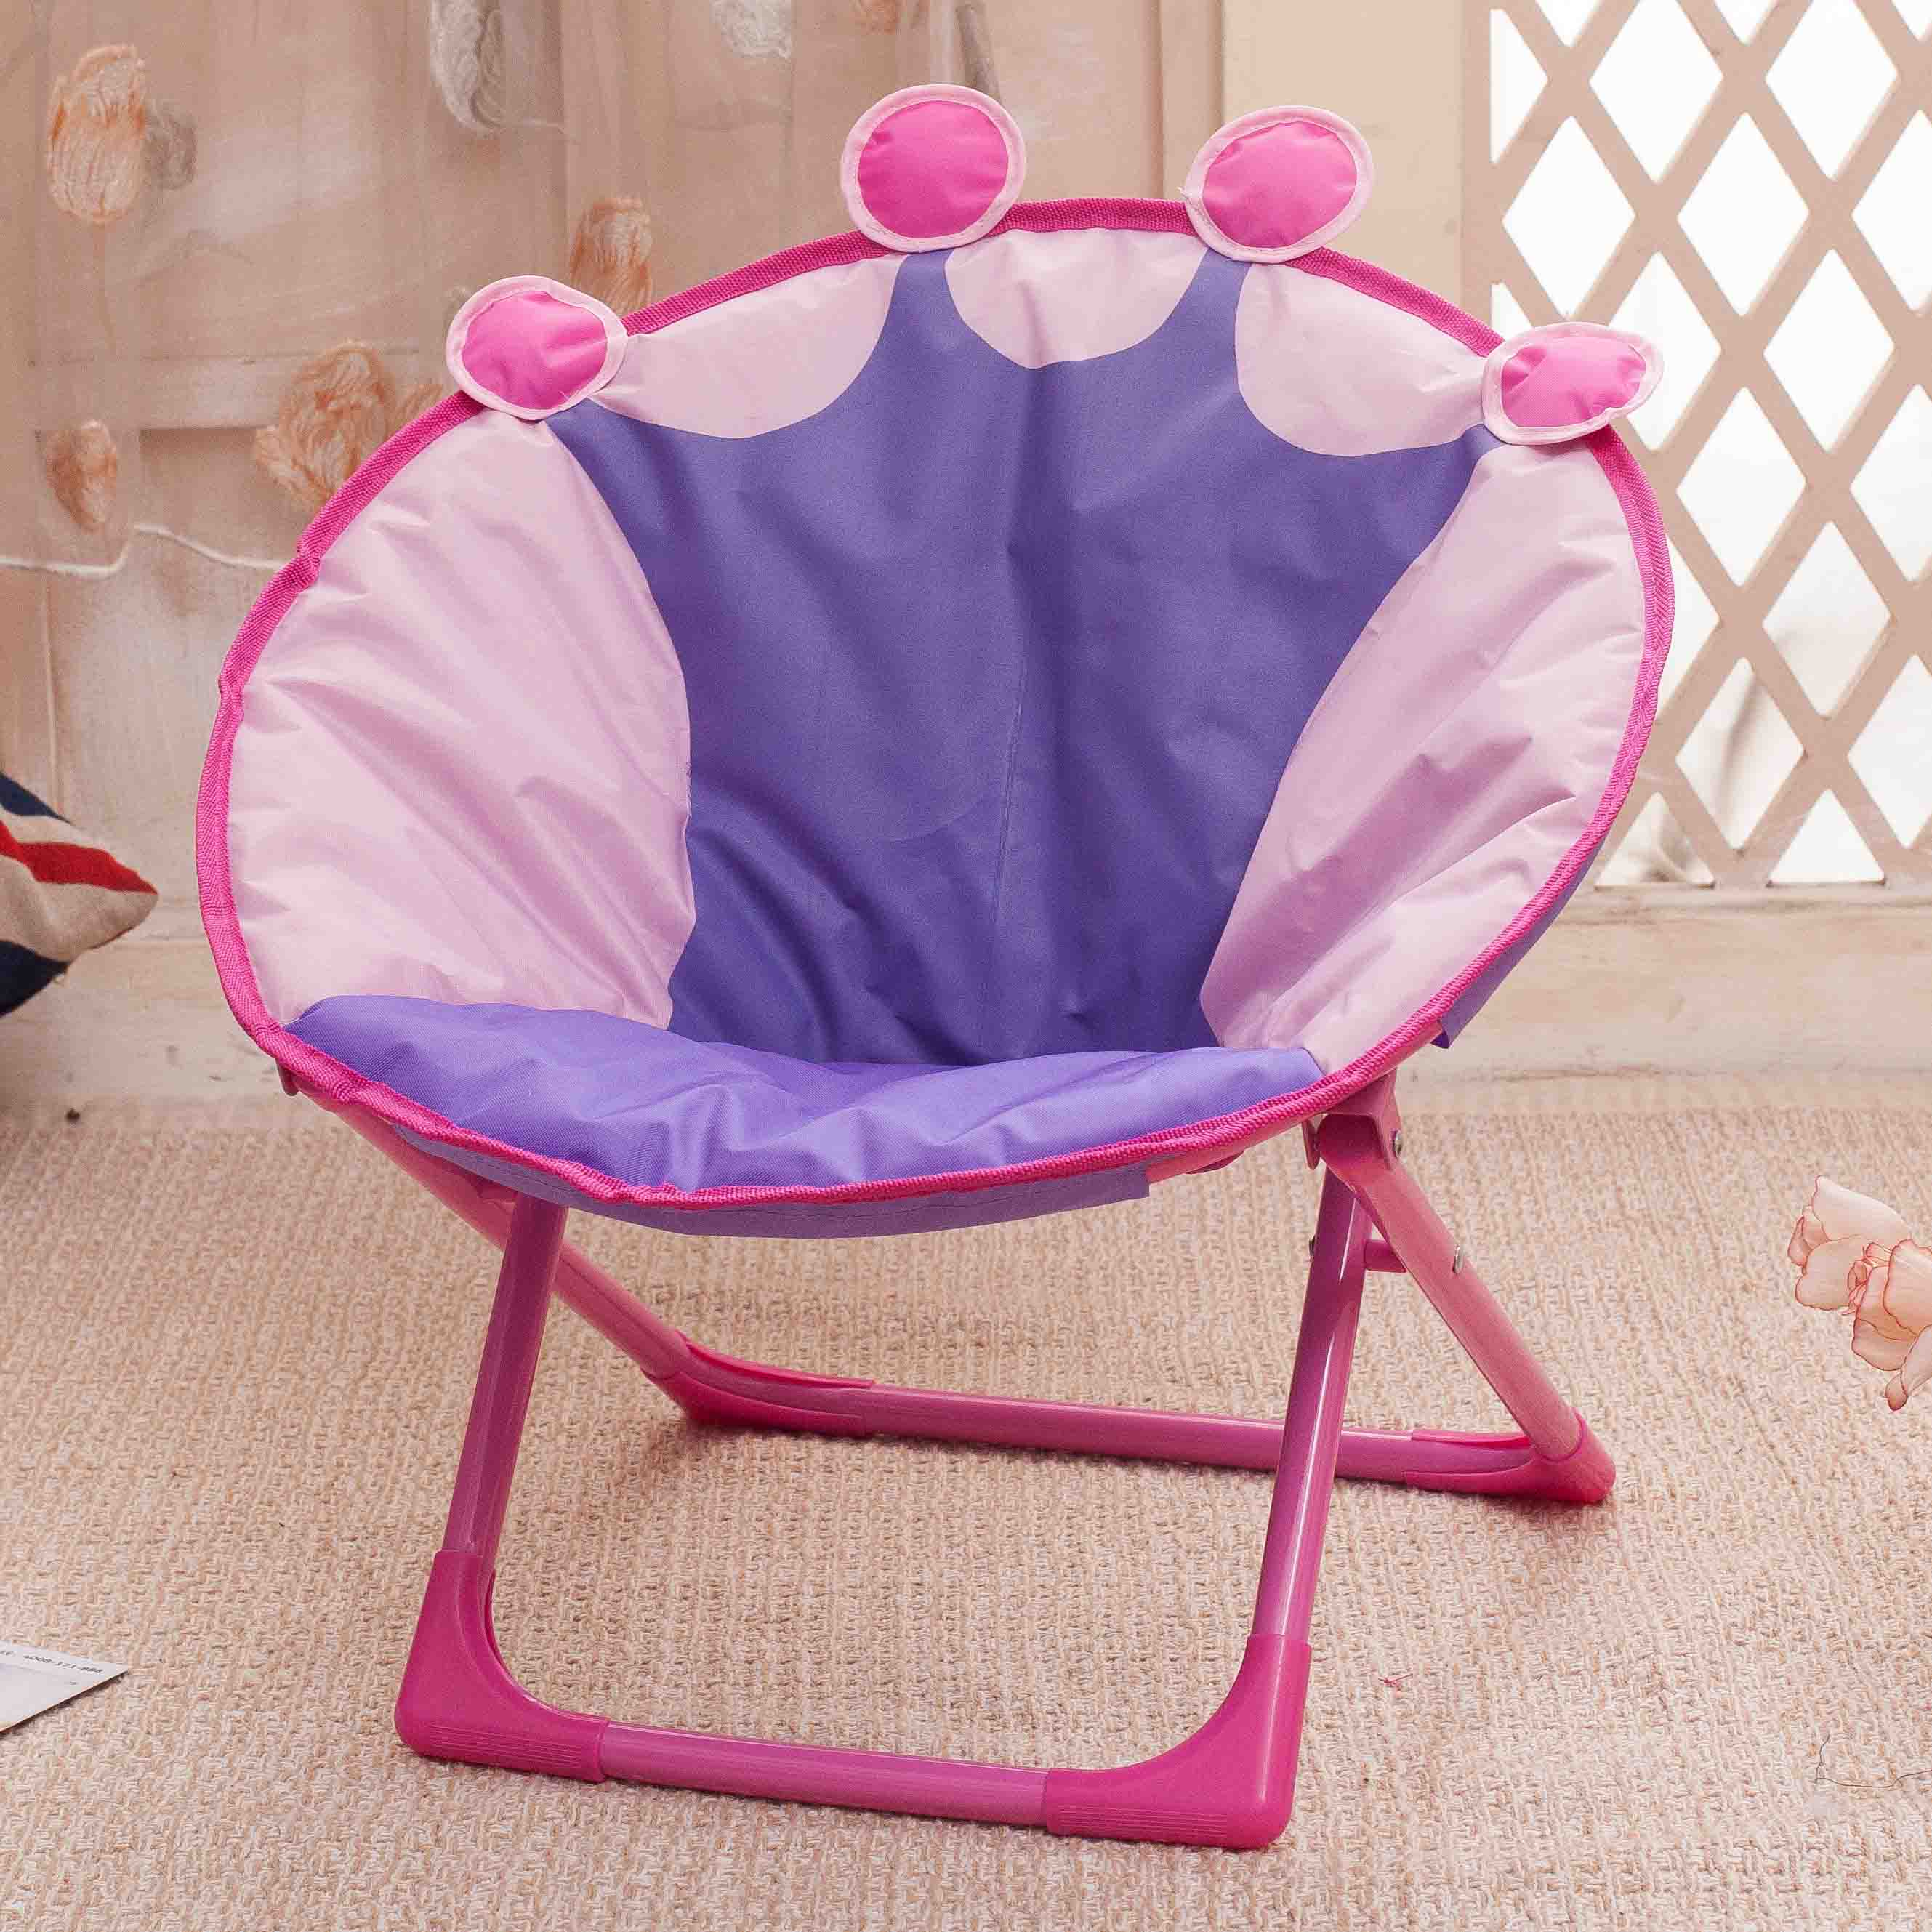 Children Folding Beach Chair Small Moon Recliner Baby Cartoon Backrest Chair Non-slip Wear-resistant Exquisite Workmanship